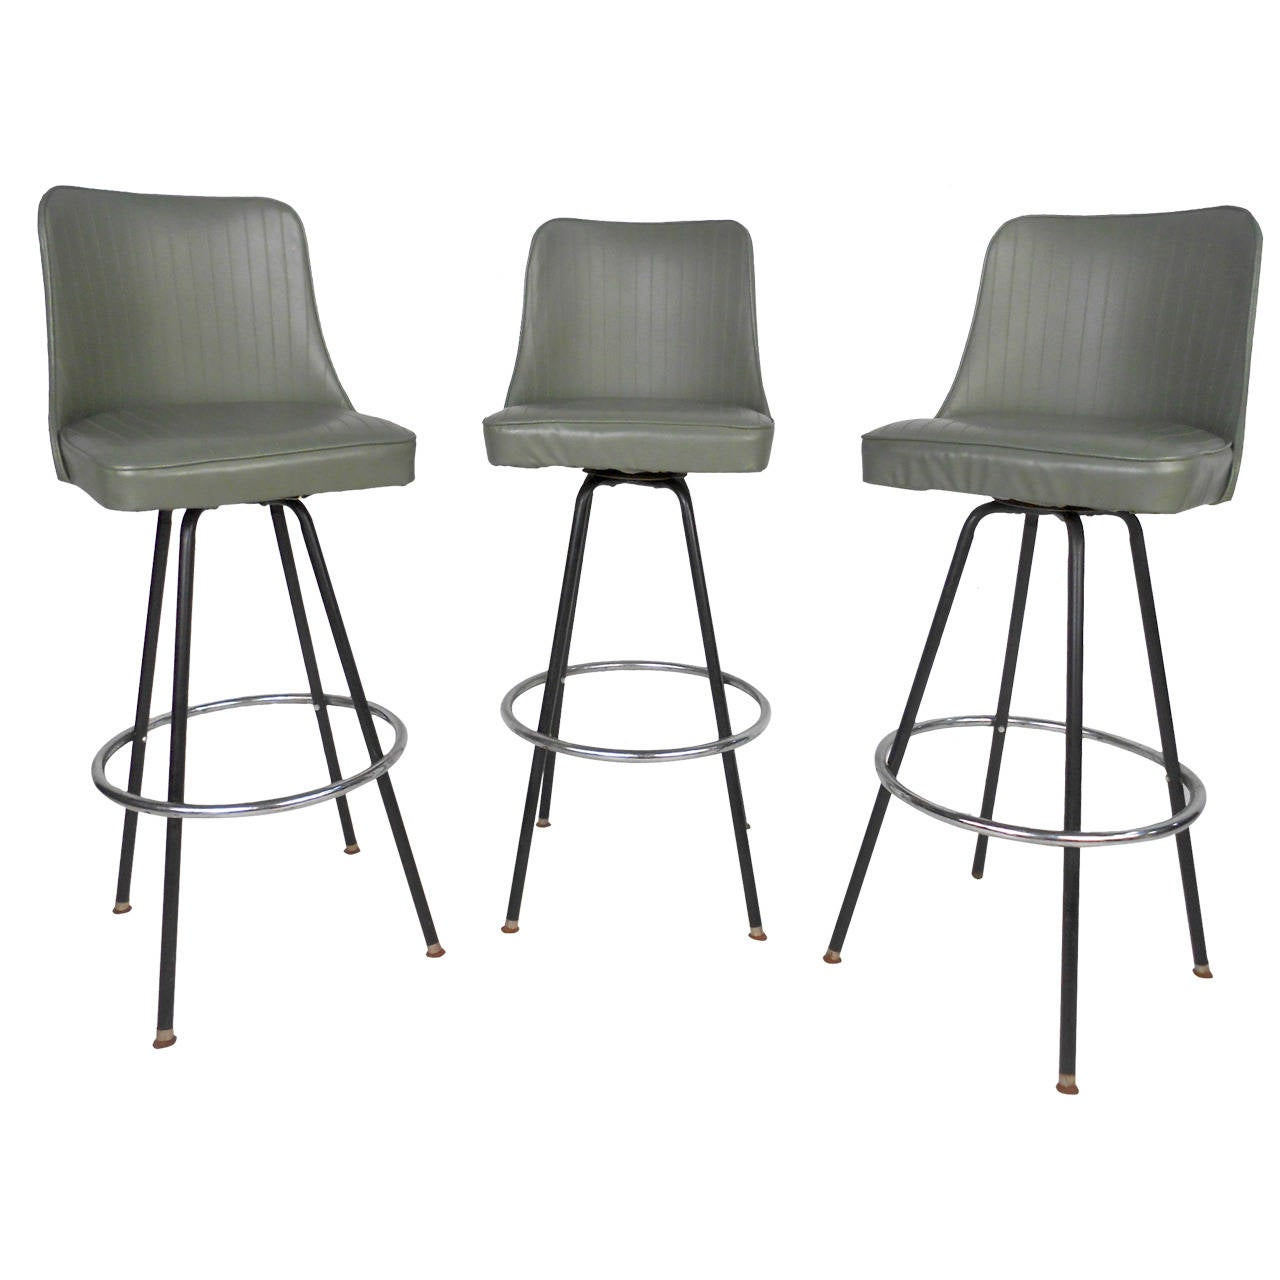 midcentury modern bar stools by atlas for sale at stdibs - midcentury modern bar stools by atlas